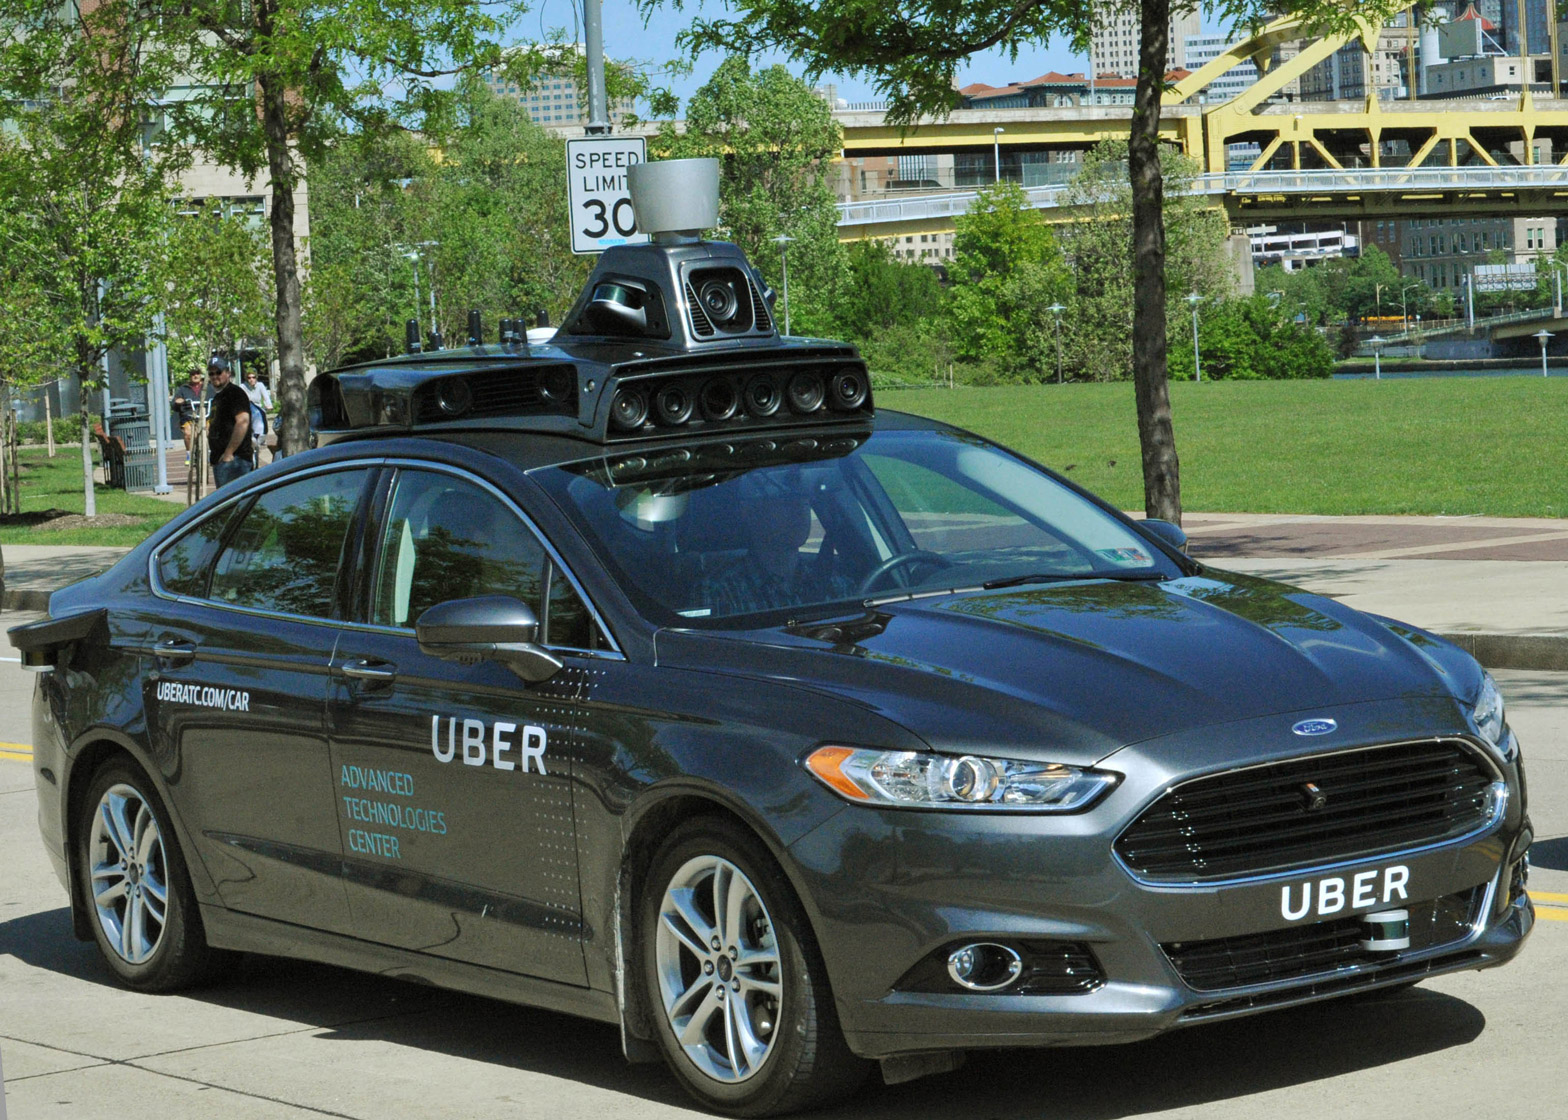 Image result for uber driverless cars